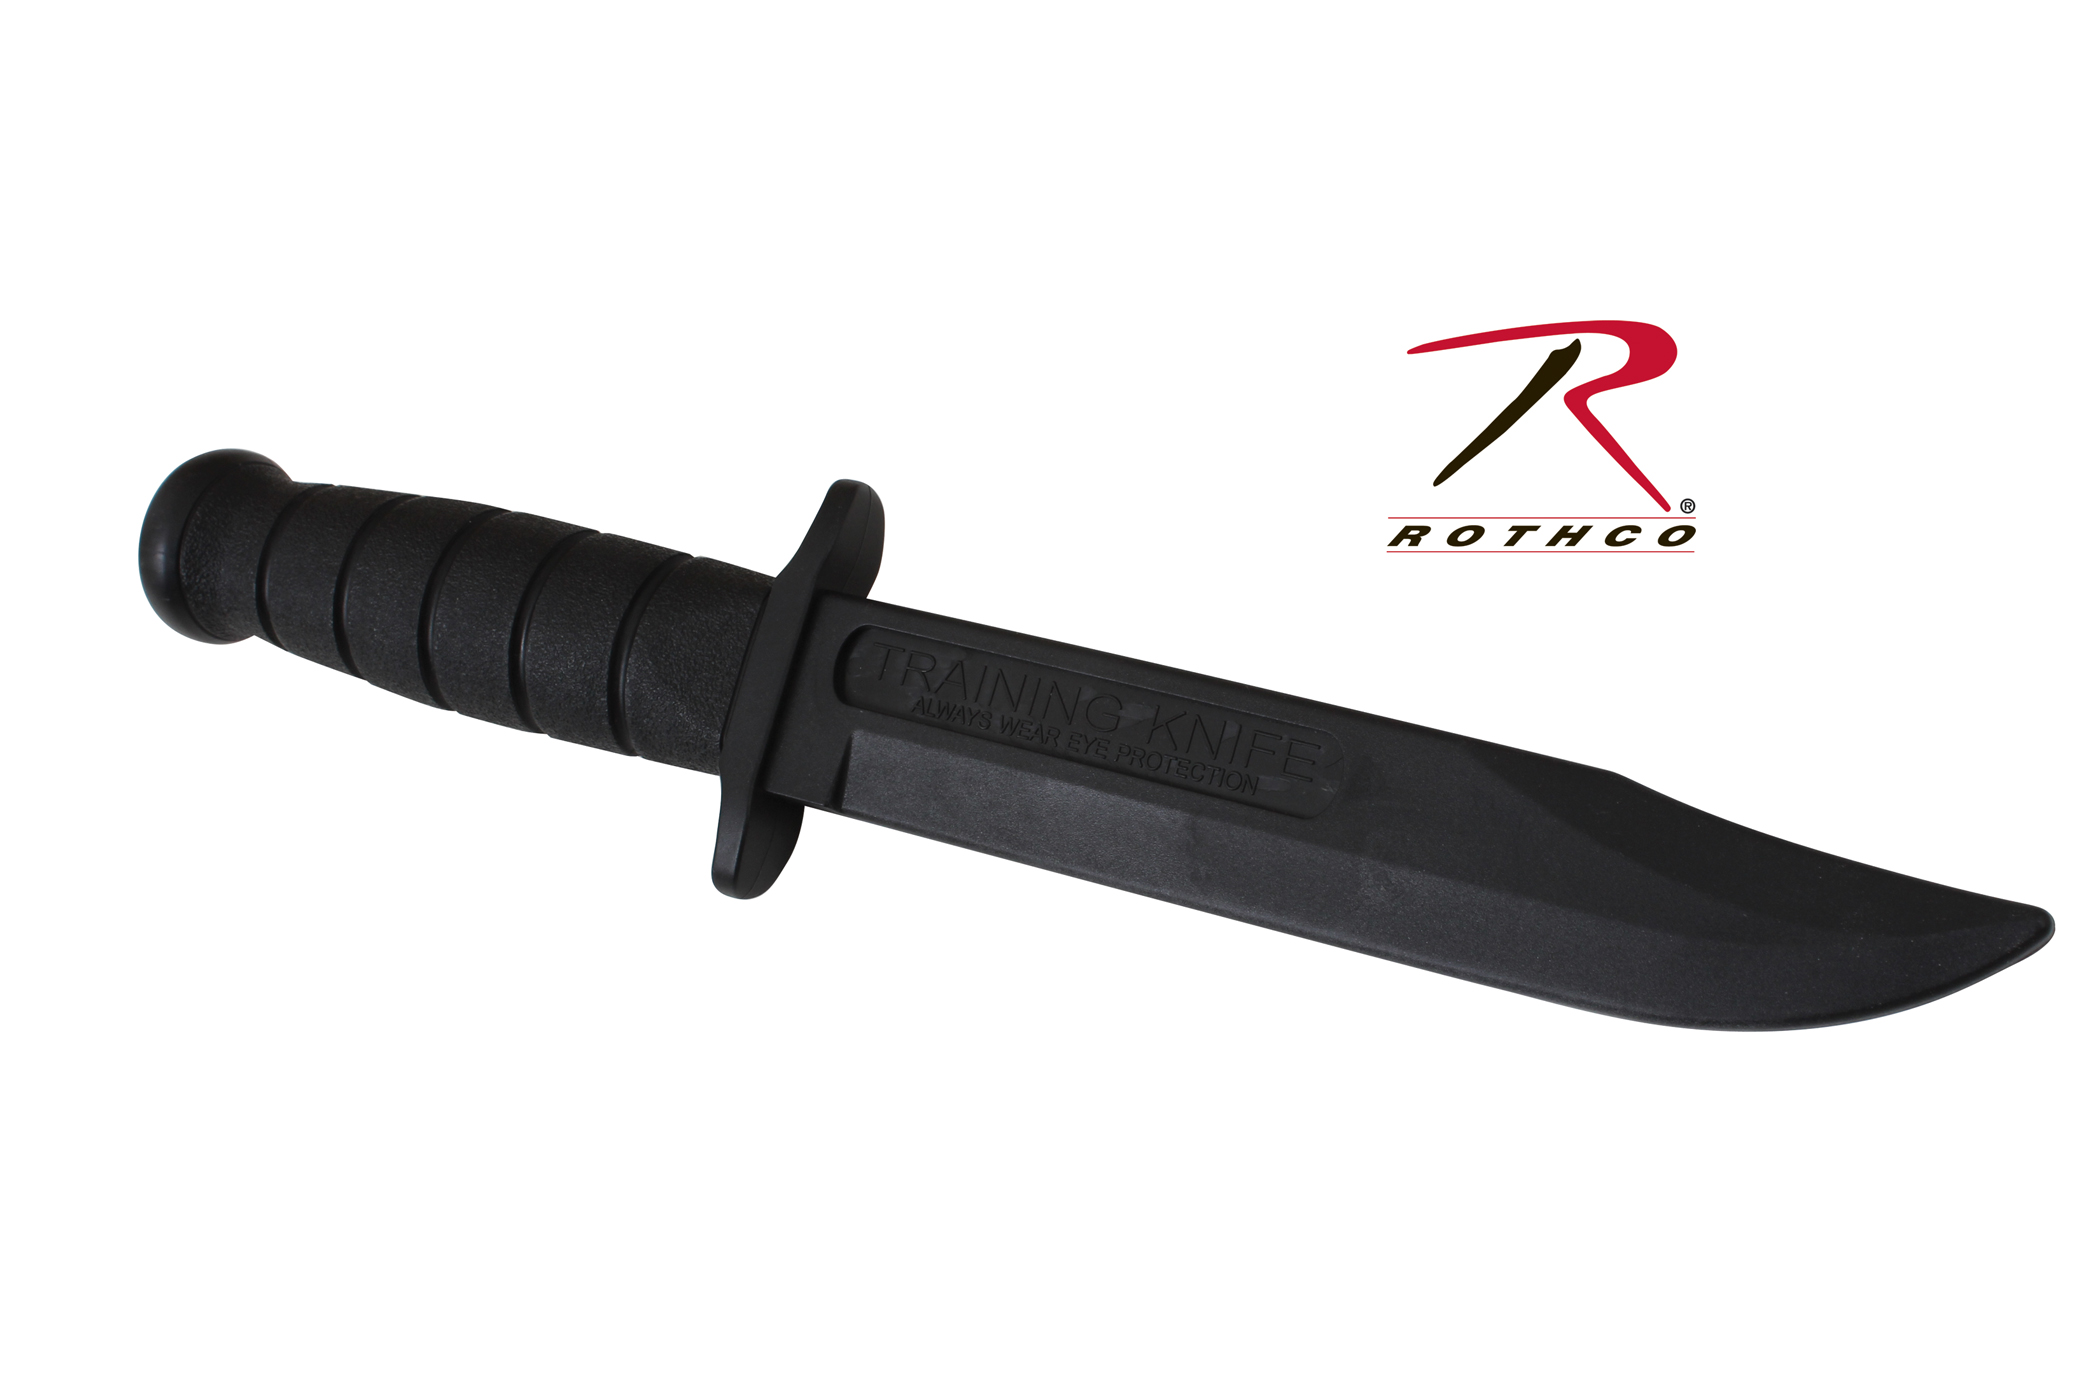 Cold Steel Leather Neck Semper Fi Rubber Training Knife